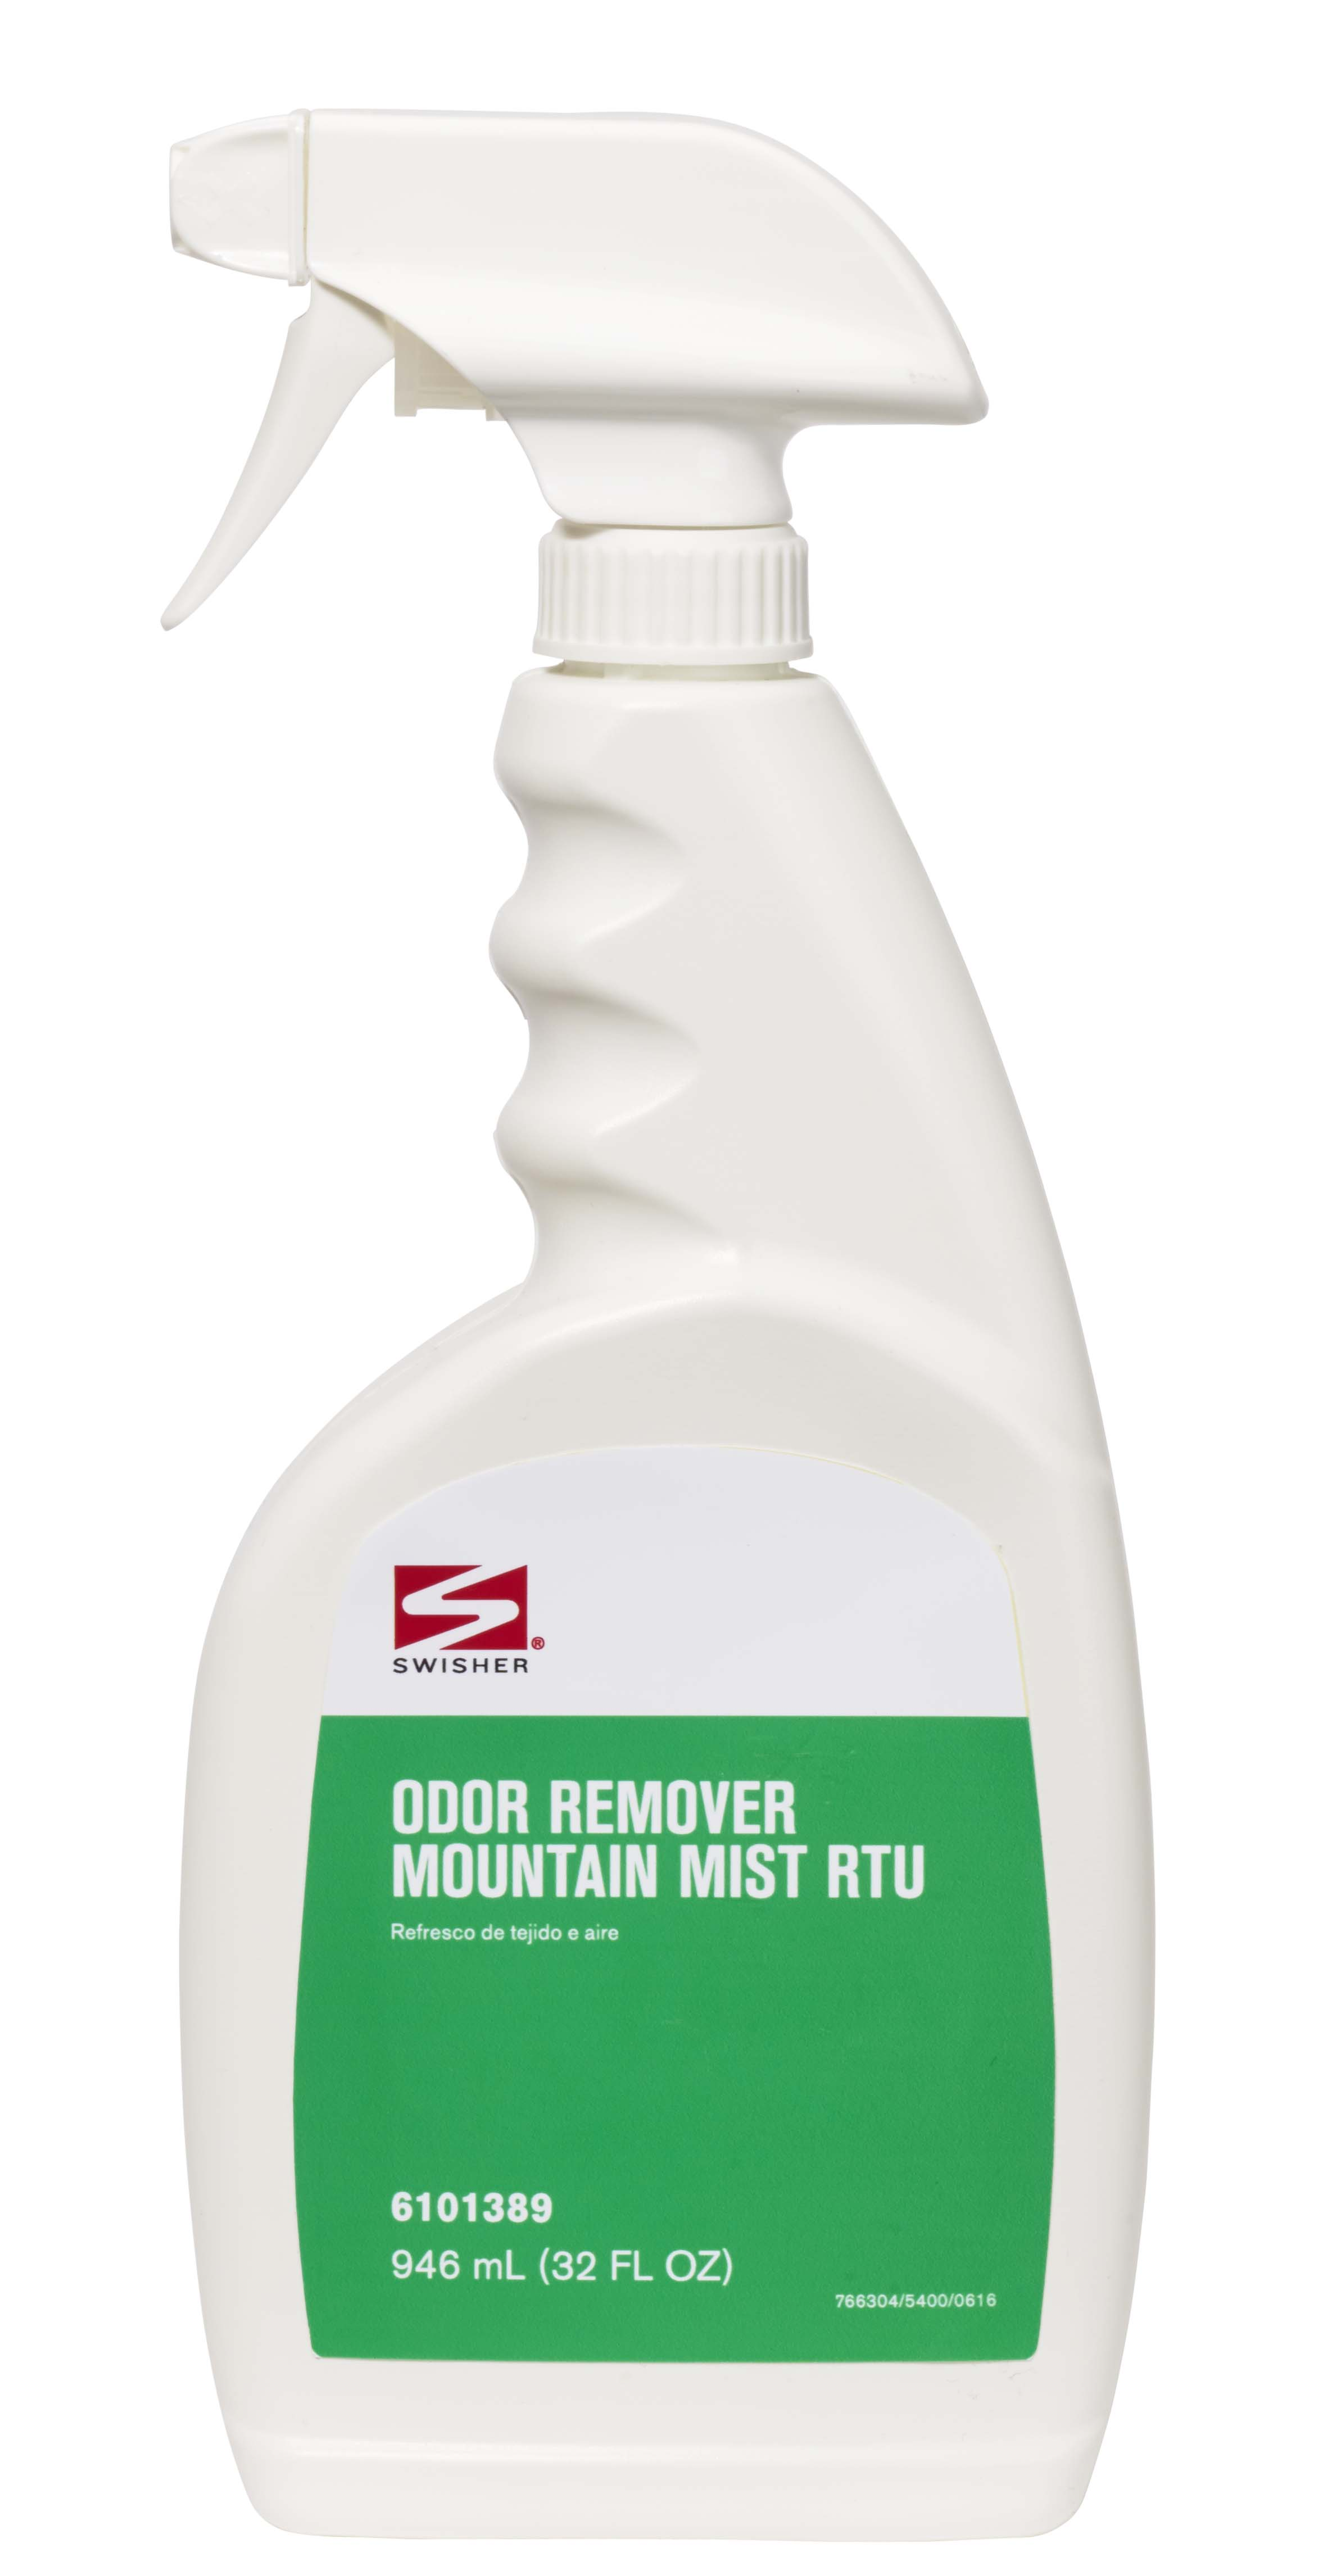 Swisher Odor Remover Mountain Mist